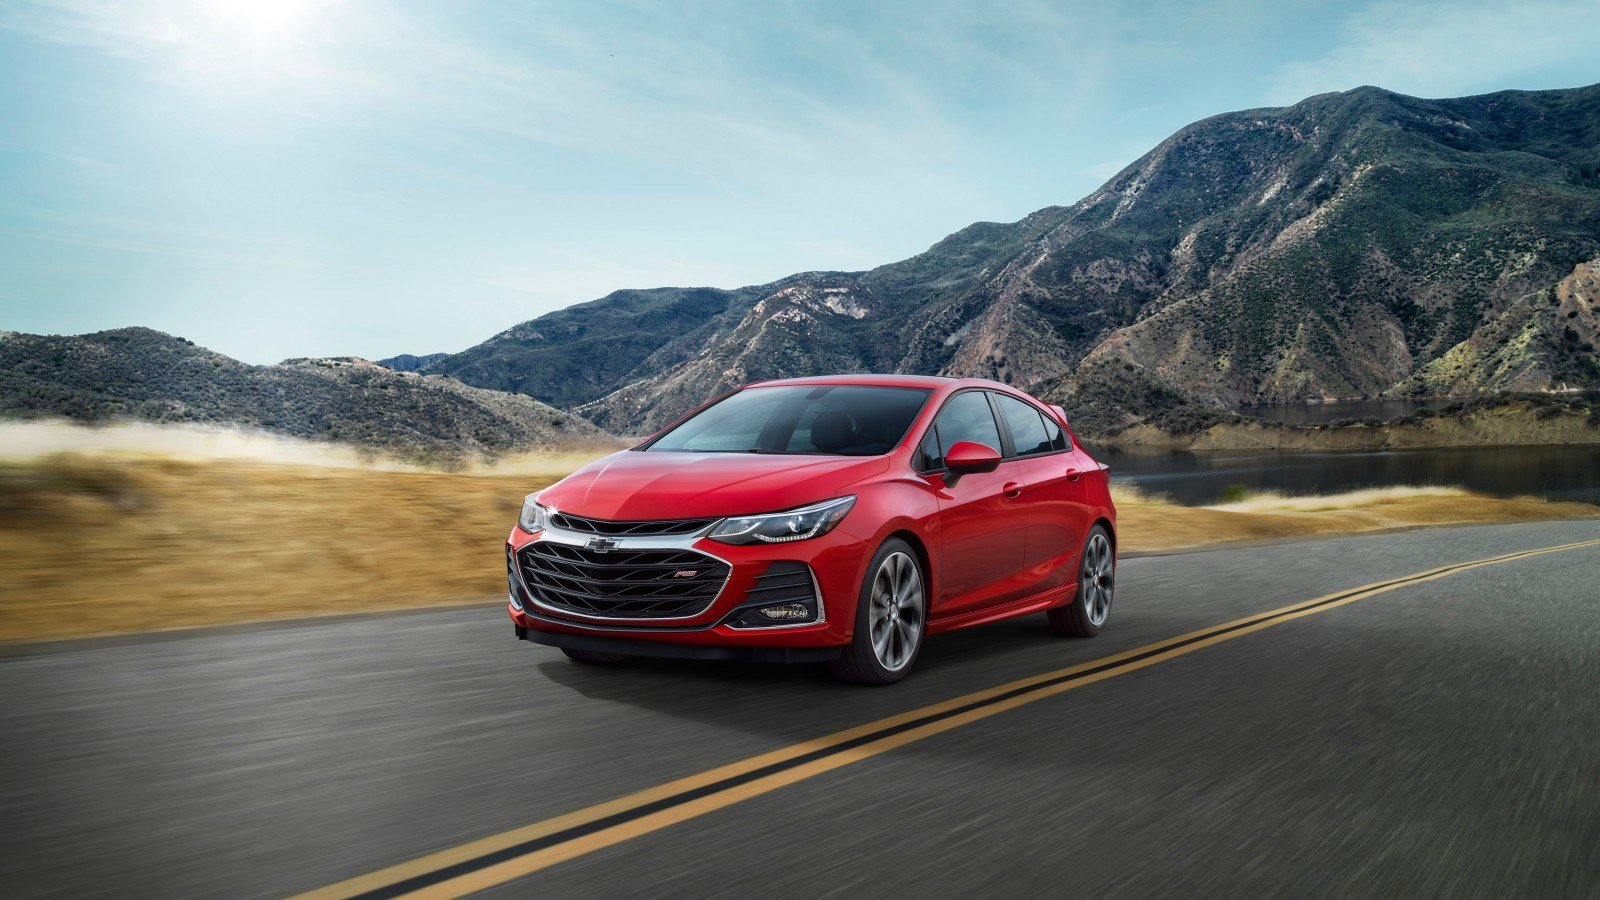 New 2019 Chevrolet Cruze Hatch Rs Wallpaper Hd Car On This Month